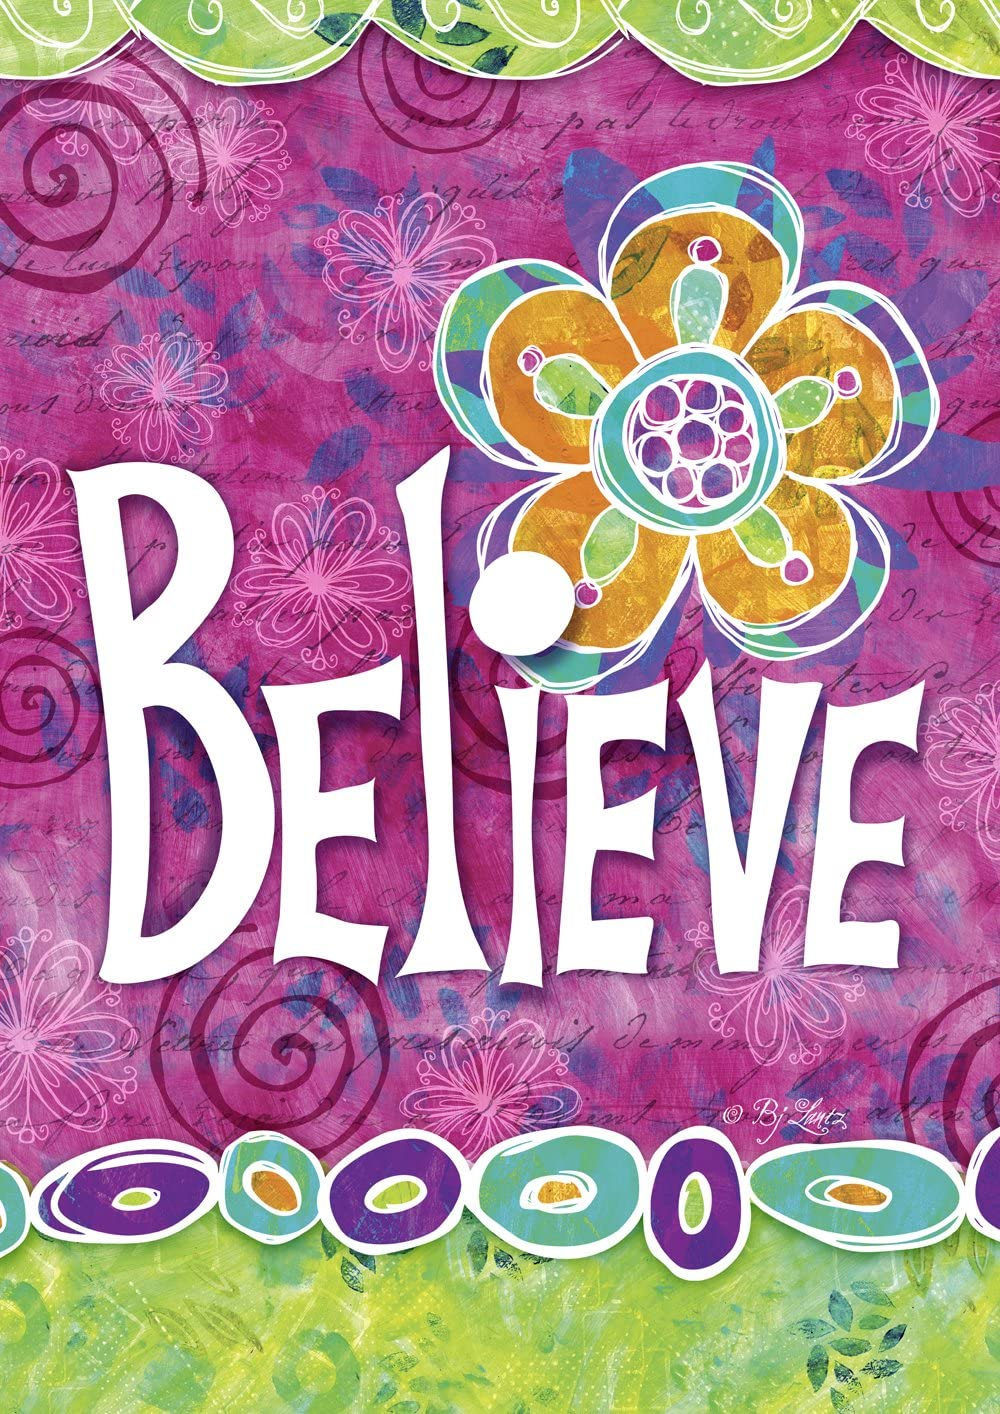 Toland Home Garden 109496 Believe Forever Decorative Colorful Inspirational Flower Double Sided , Purple/Green/Orange/White ,House Flag 28 x 40 Inch